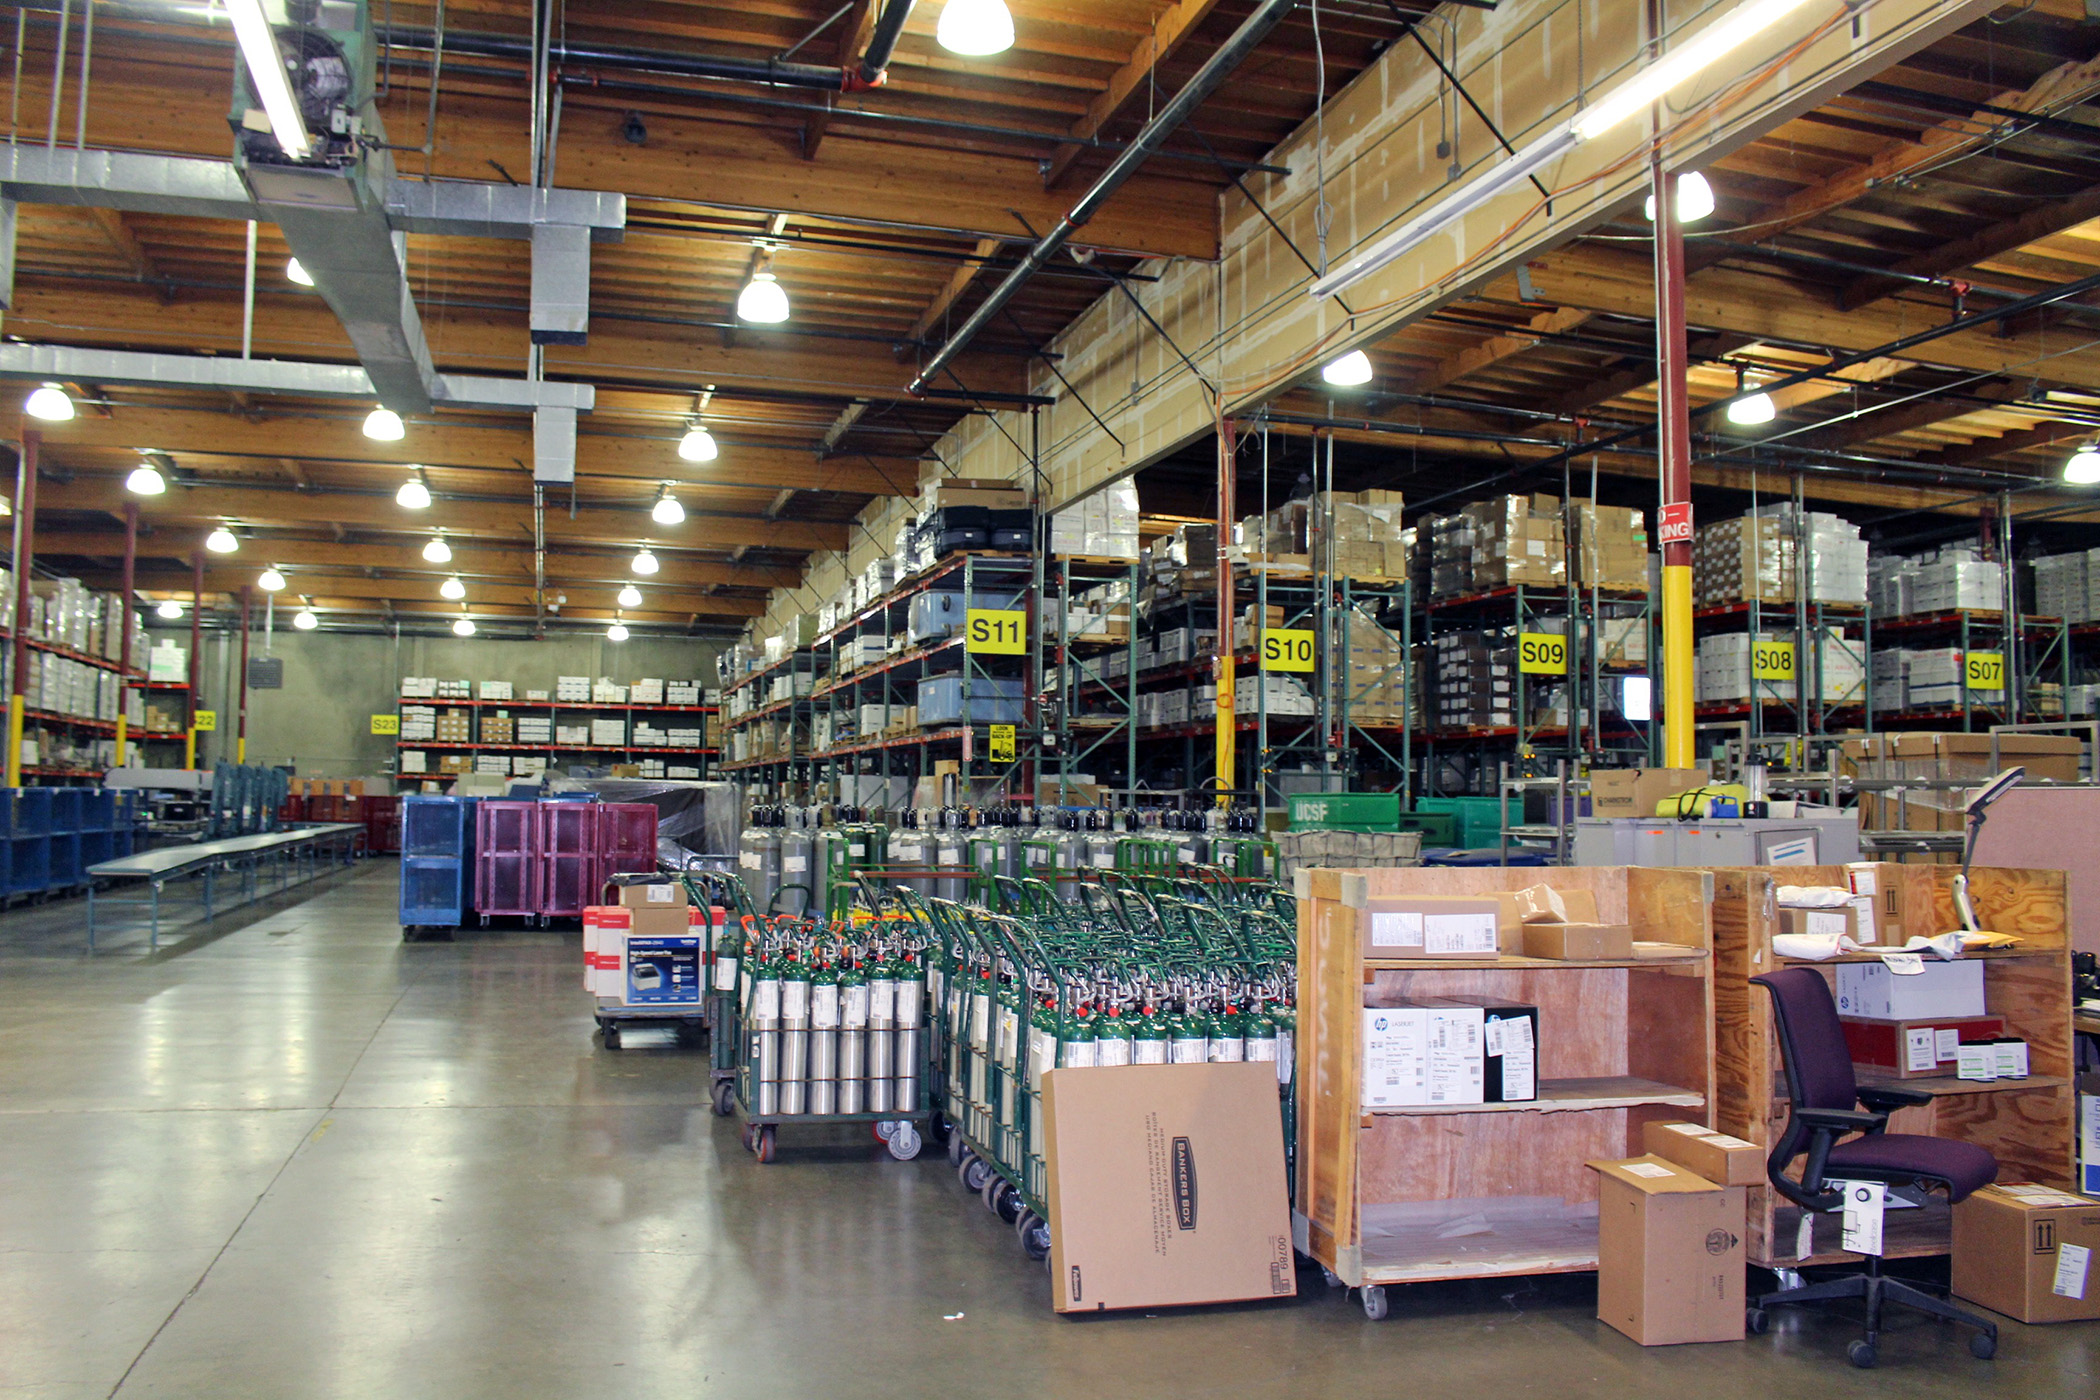 Finding a Trustworthy Service For Your Goods